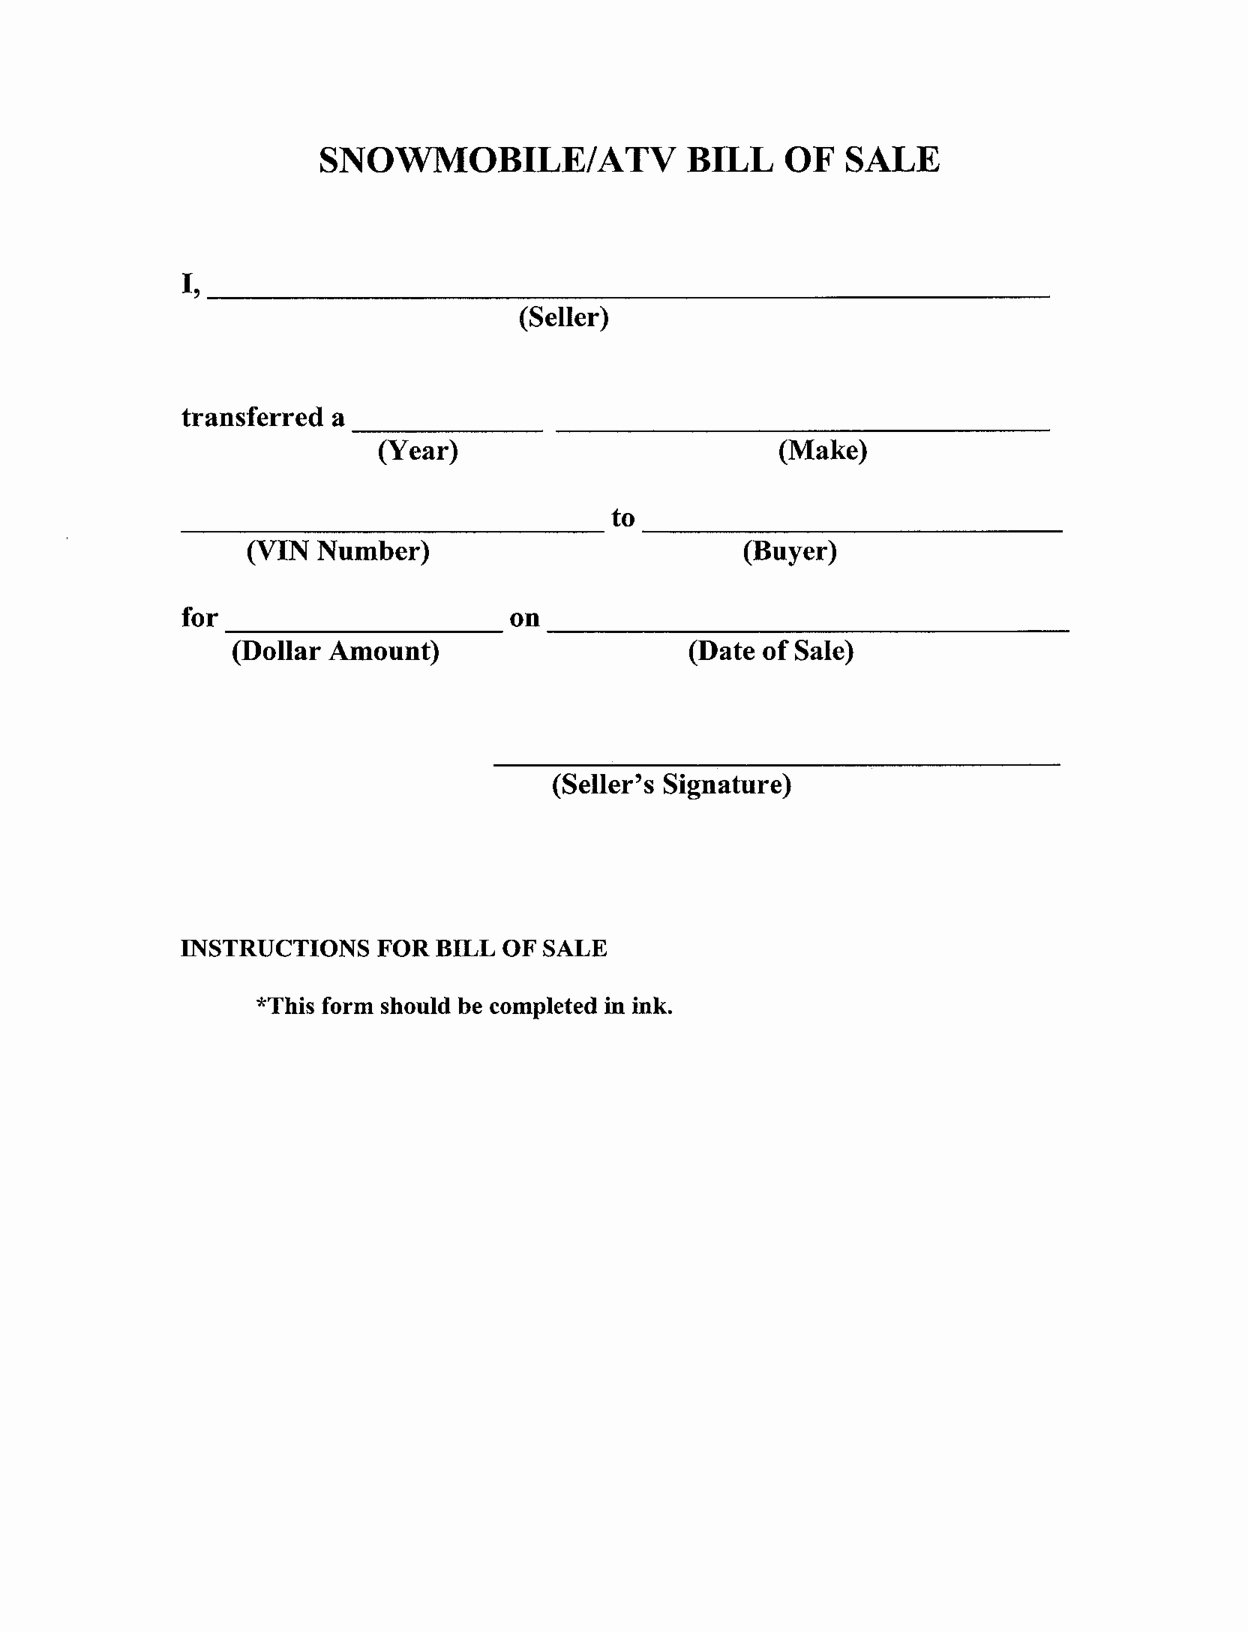 Bill Of Sale Free Printable Lovely Free Printable Bill Of Sale Templates form Generic